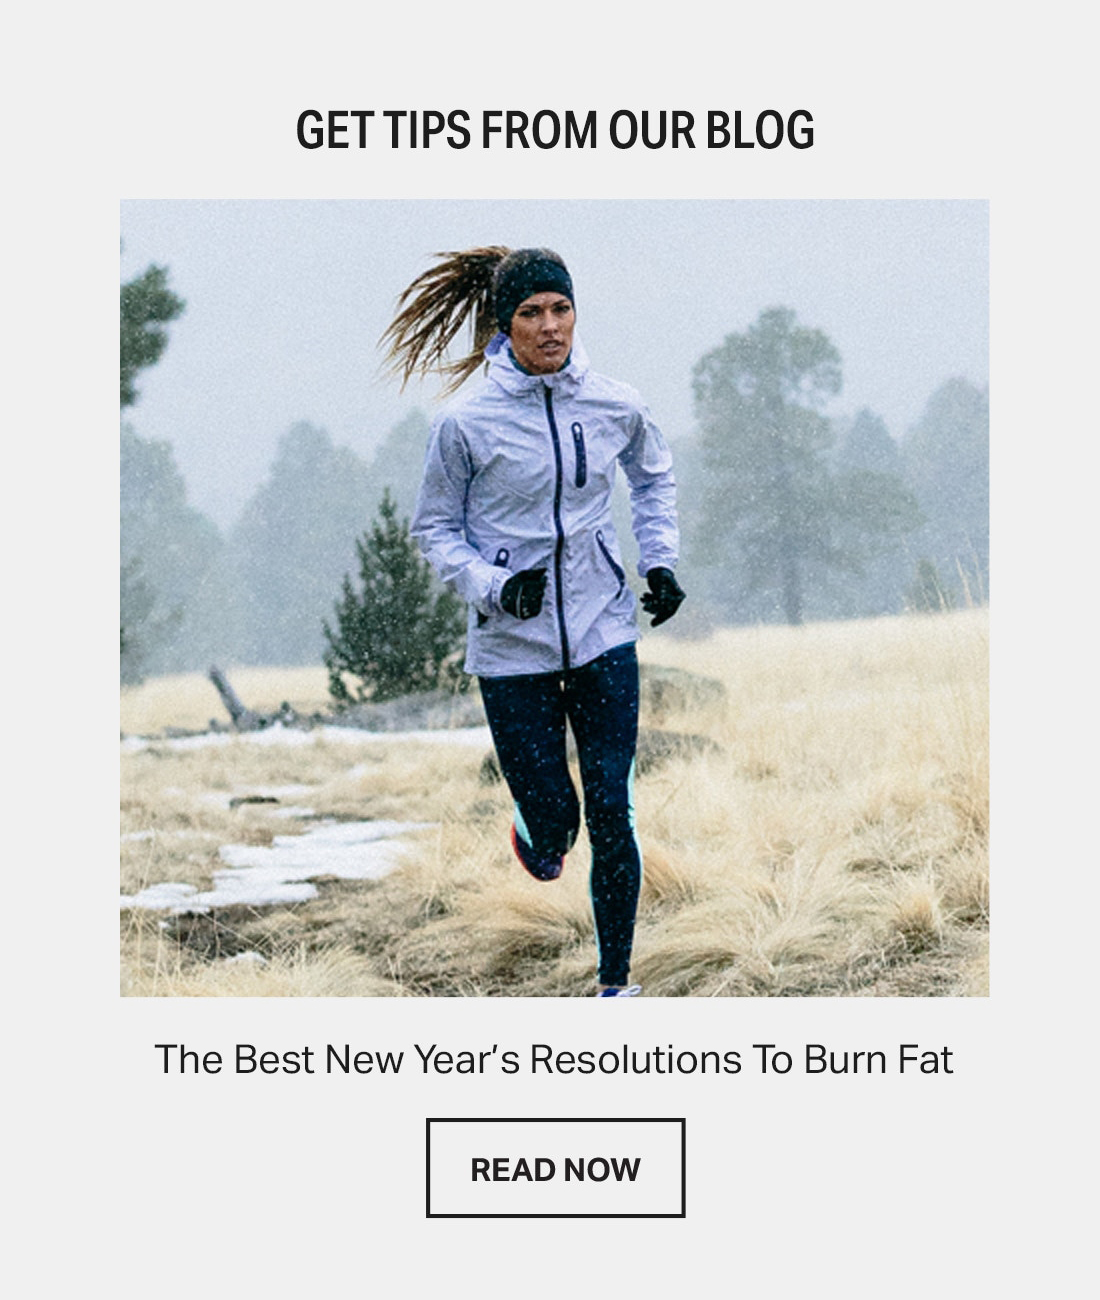 GET TIPS FROM OUR BLOG - The Best New Year's Resolutions To Burn Fat - READ NOW